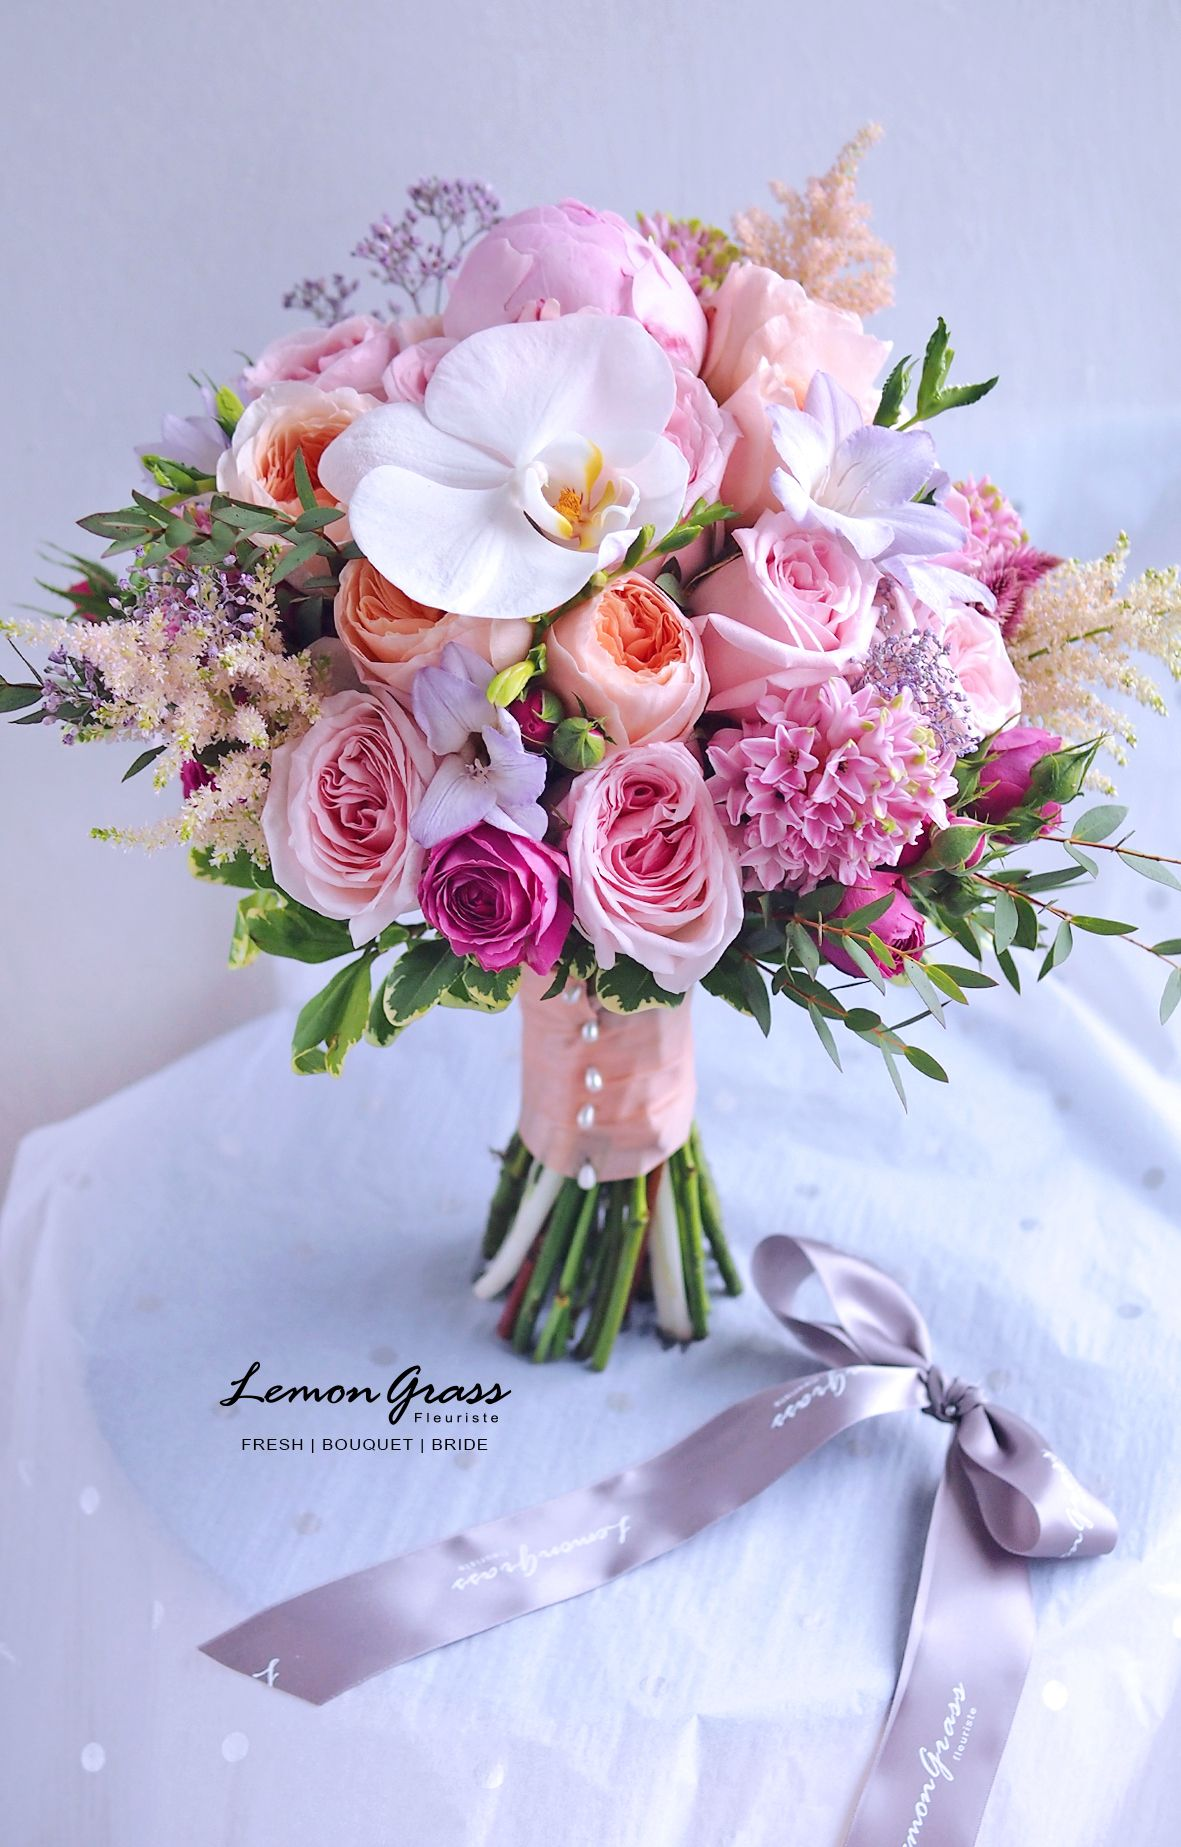 fresh flowers bouquets weddings pin by lemongrasswedding on fresh flower bouquets 4368